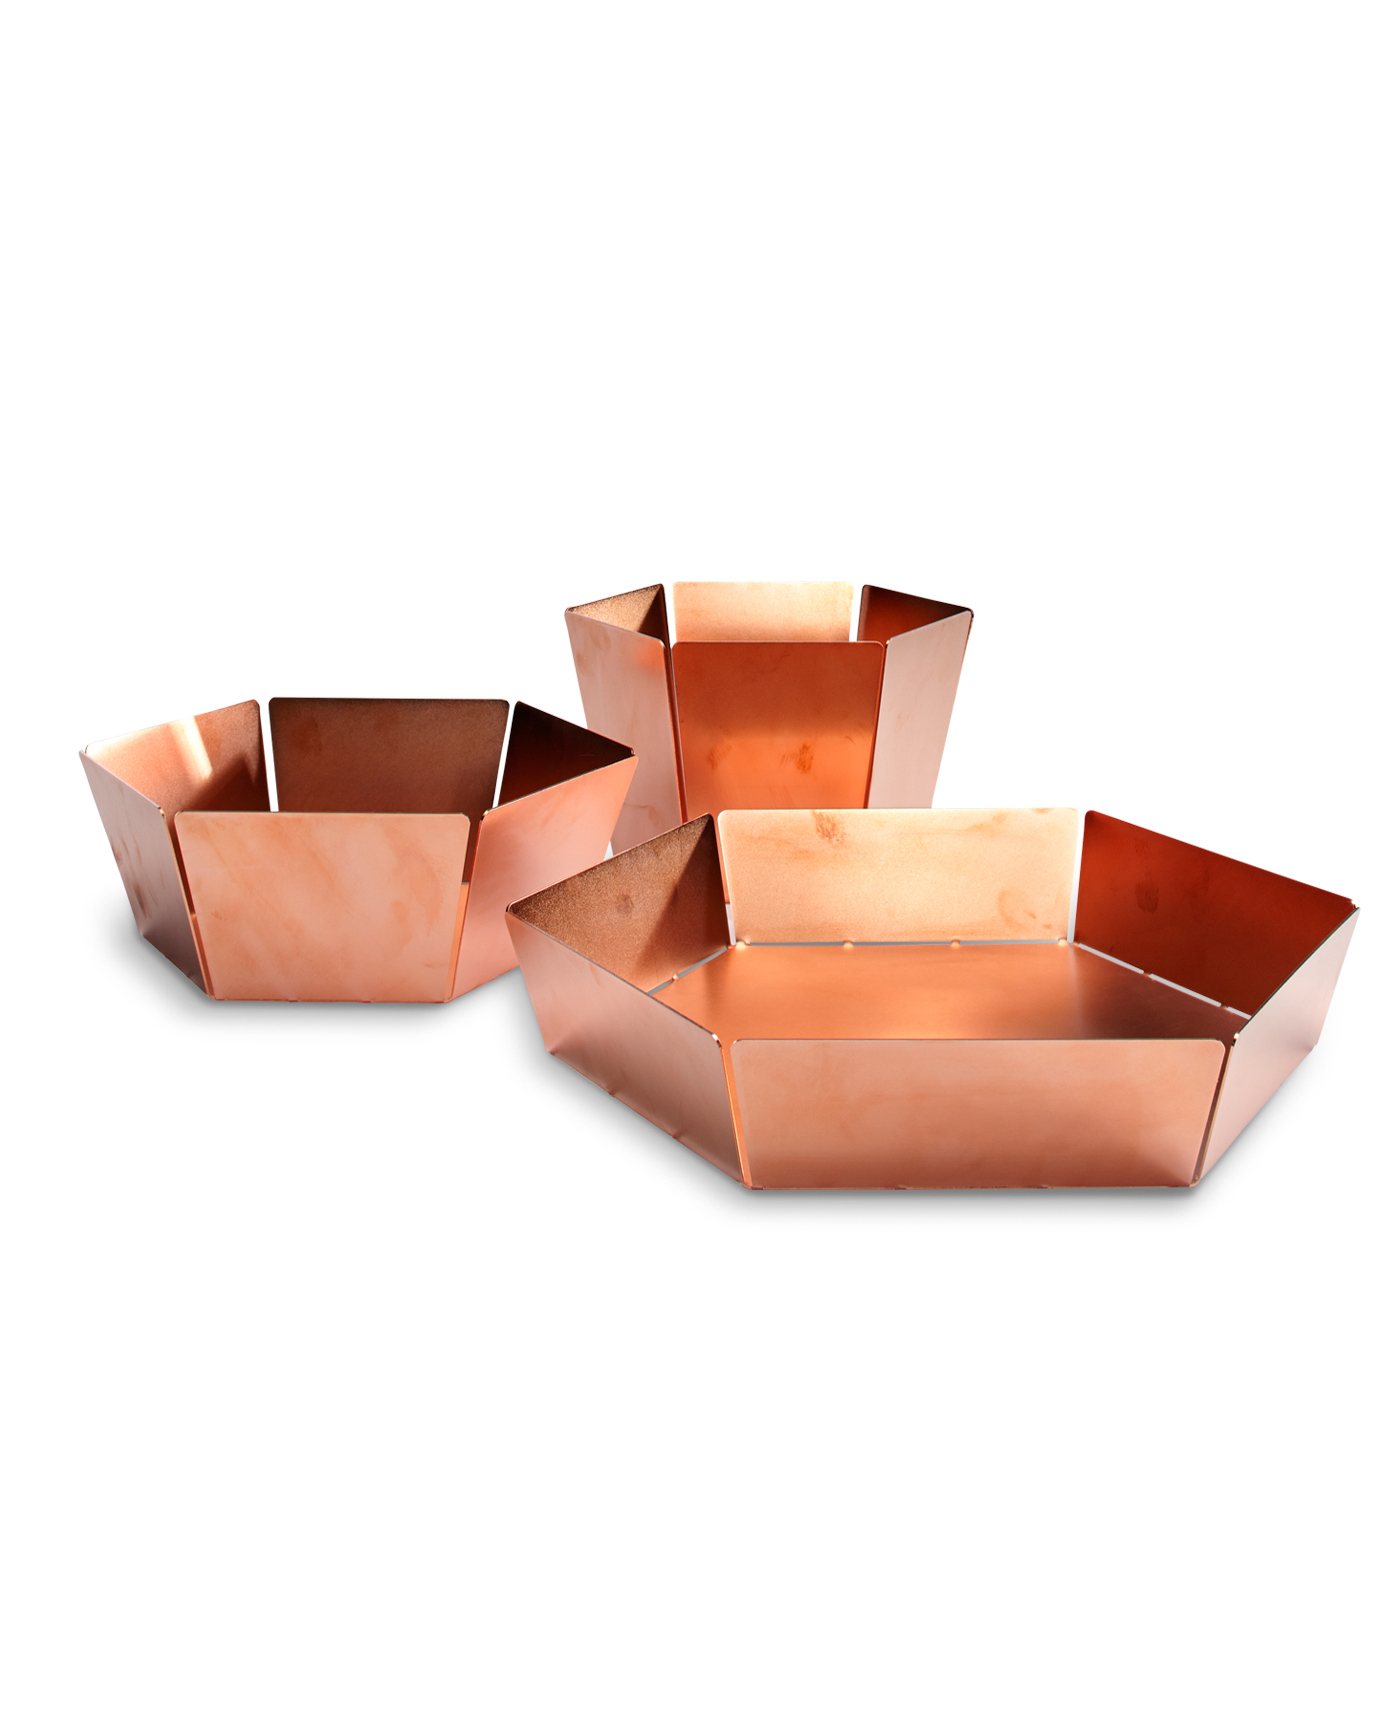 copper-registry-2d3d-bowl-0116.jpg